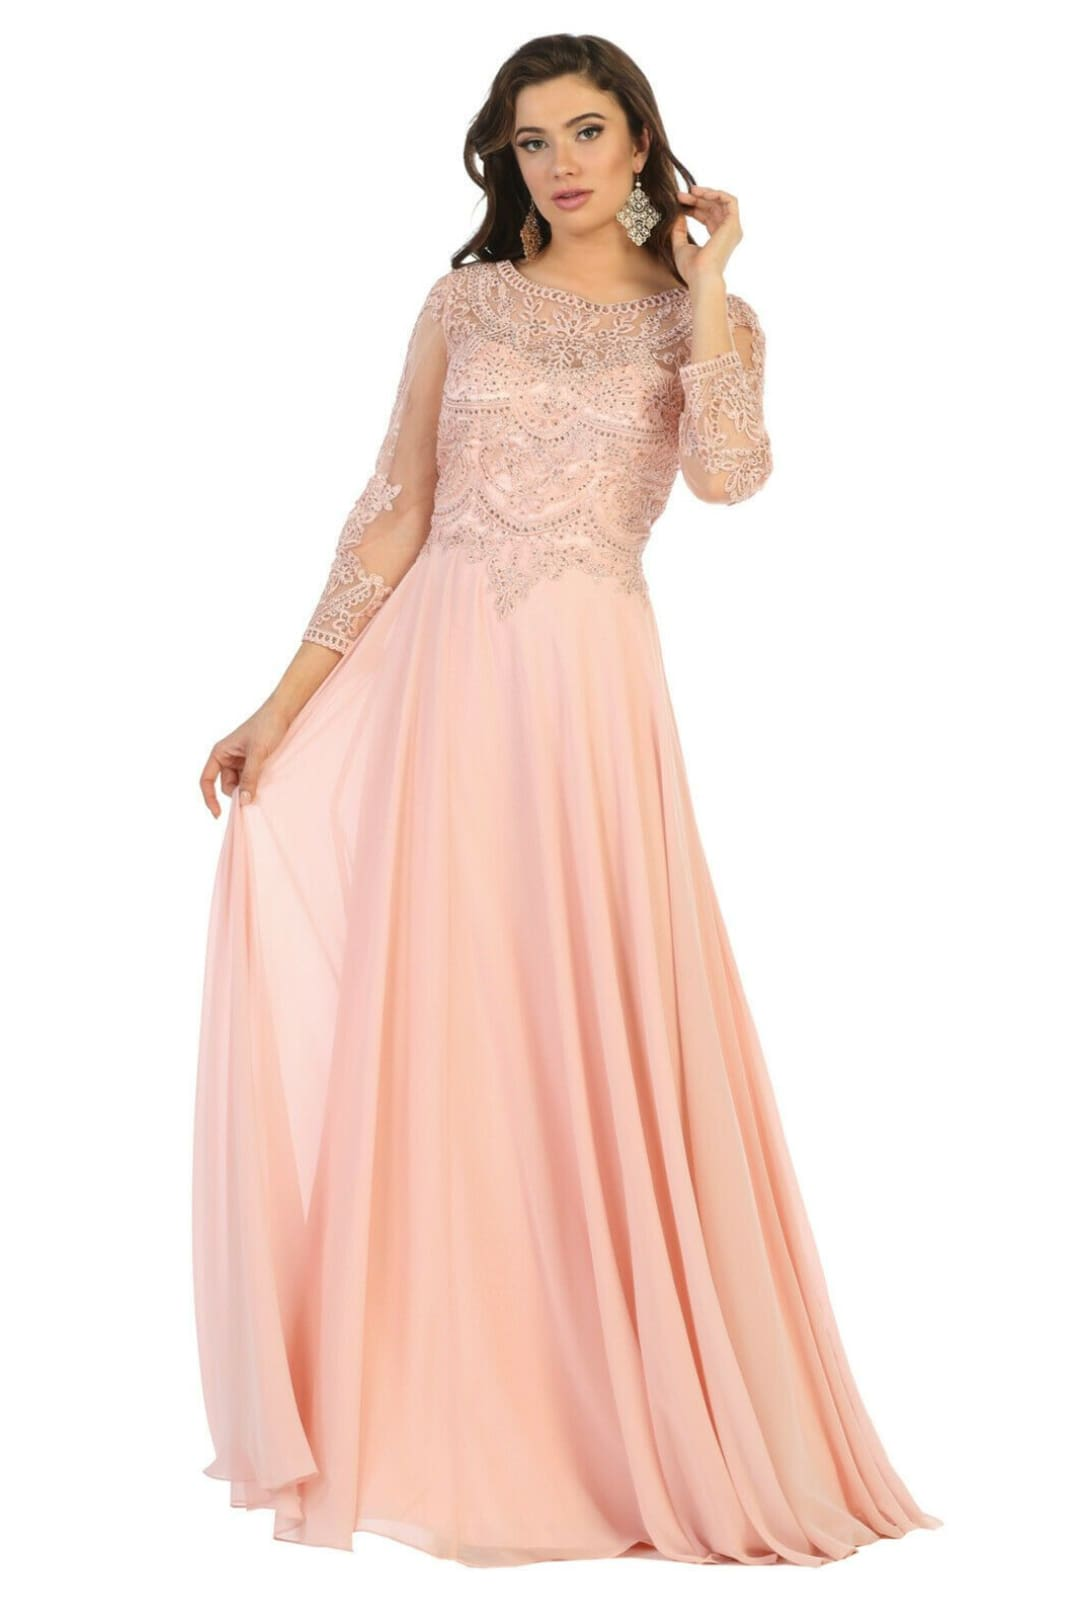 Classy Mother of the Bride Gown - Dusty Rose / 2XL